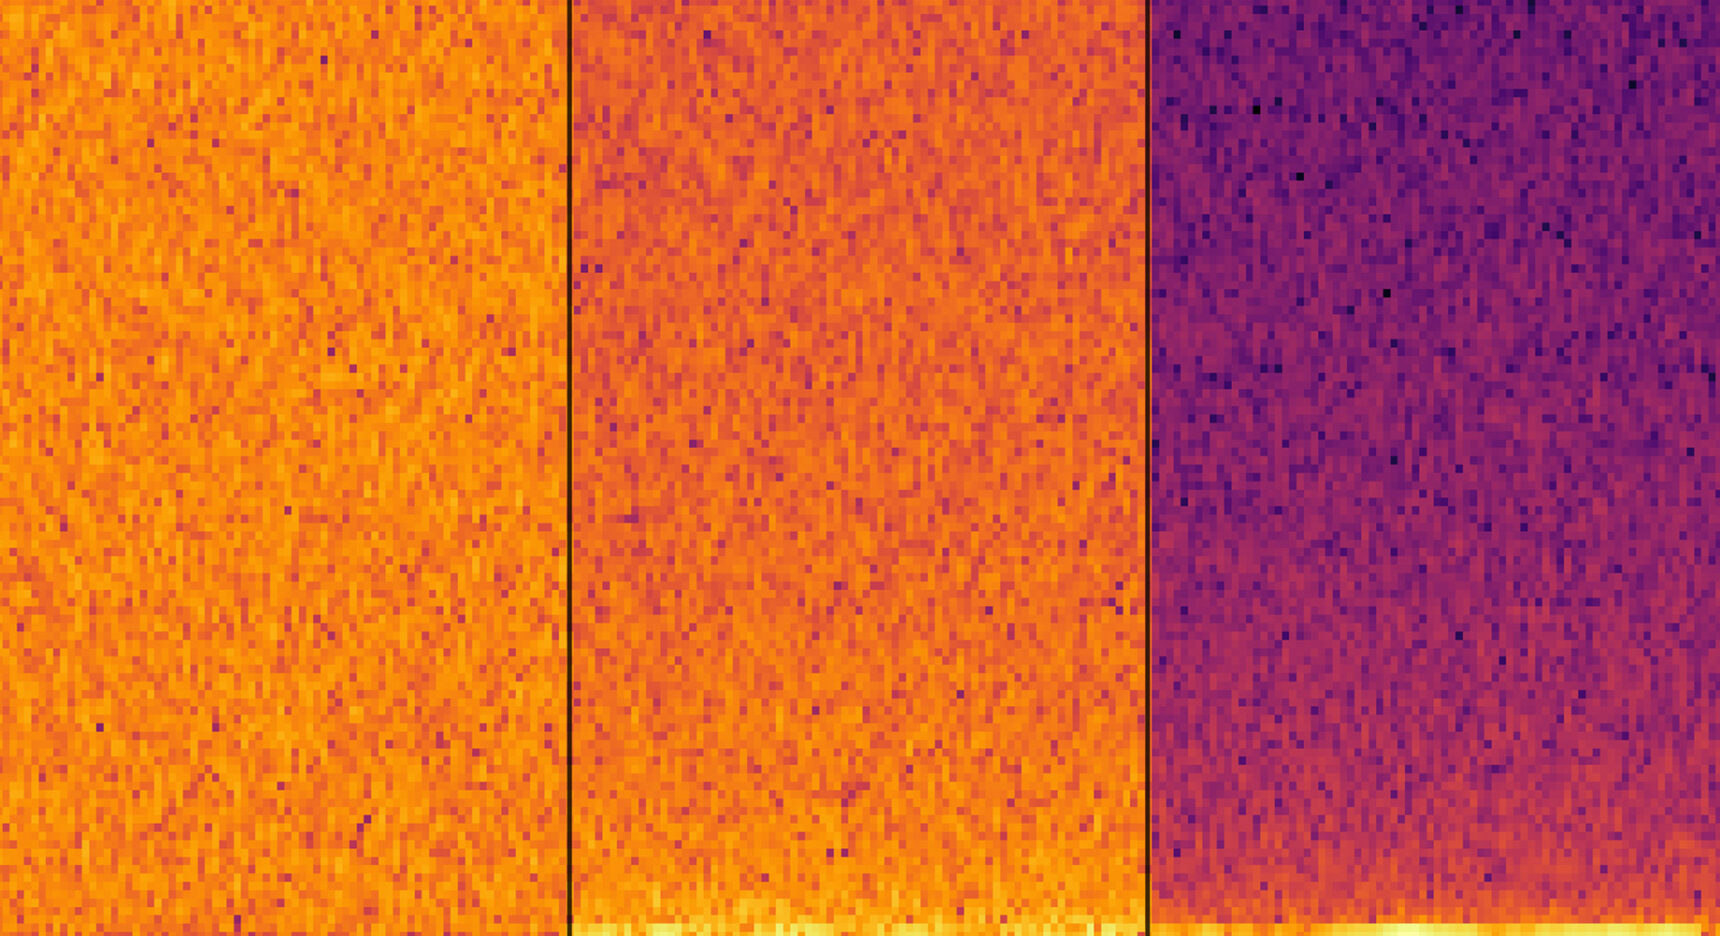 Examples of images of white noise, pink noise and brown noise.